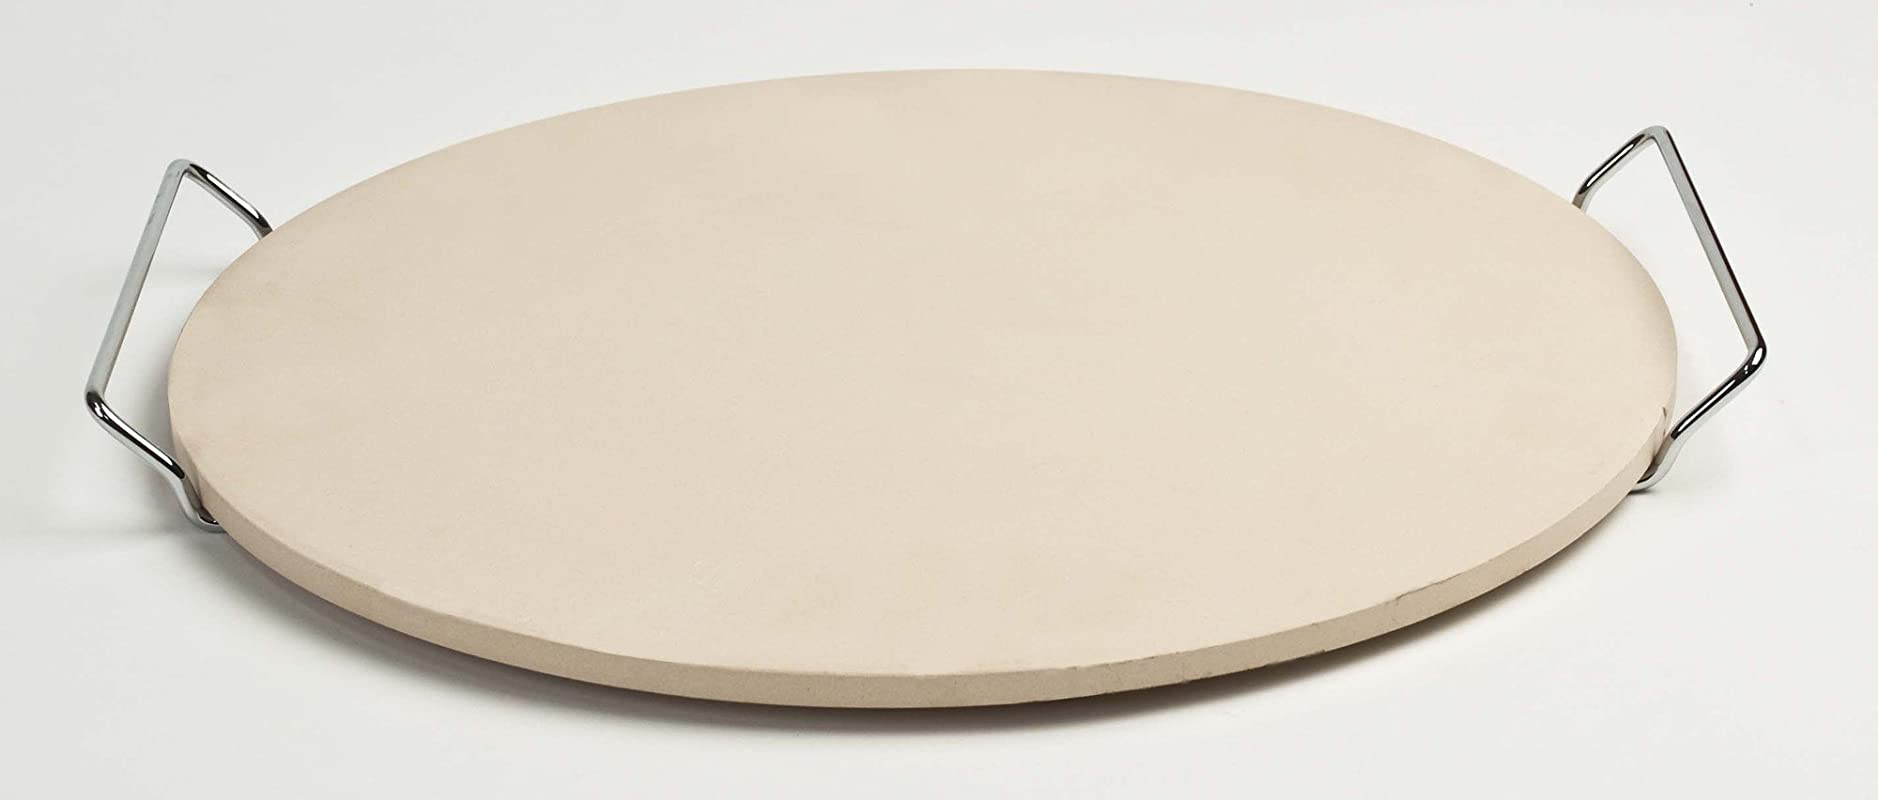 Pizza Craft 15 Round Pizza Stone With Wire Frame